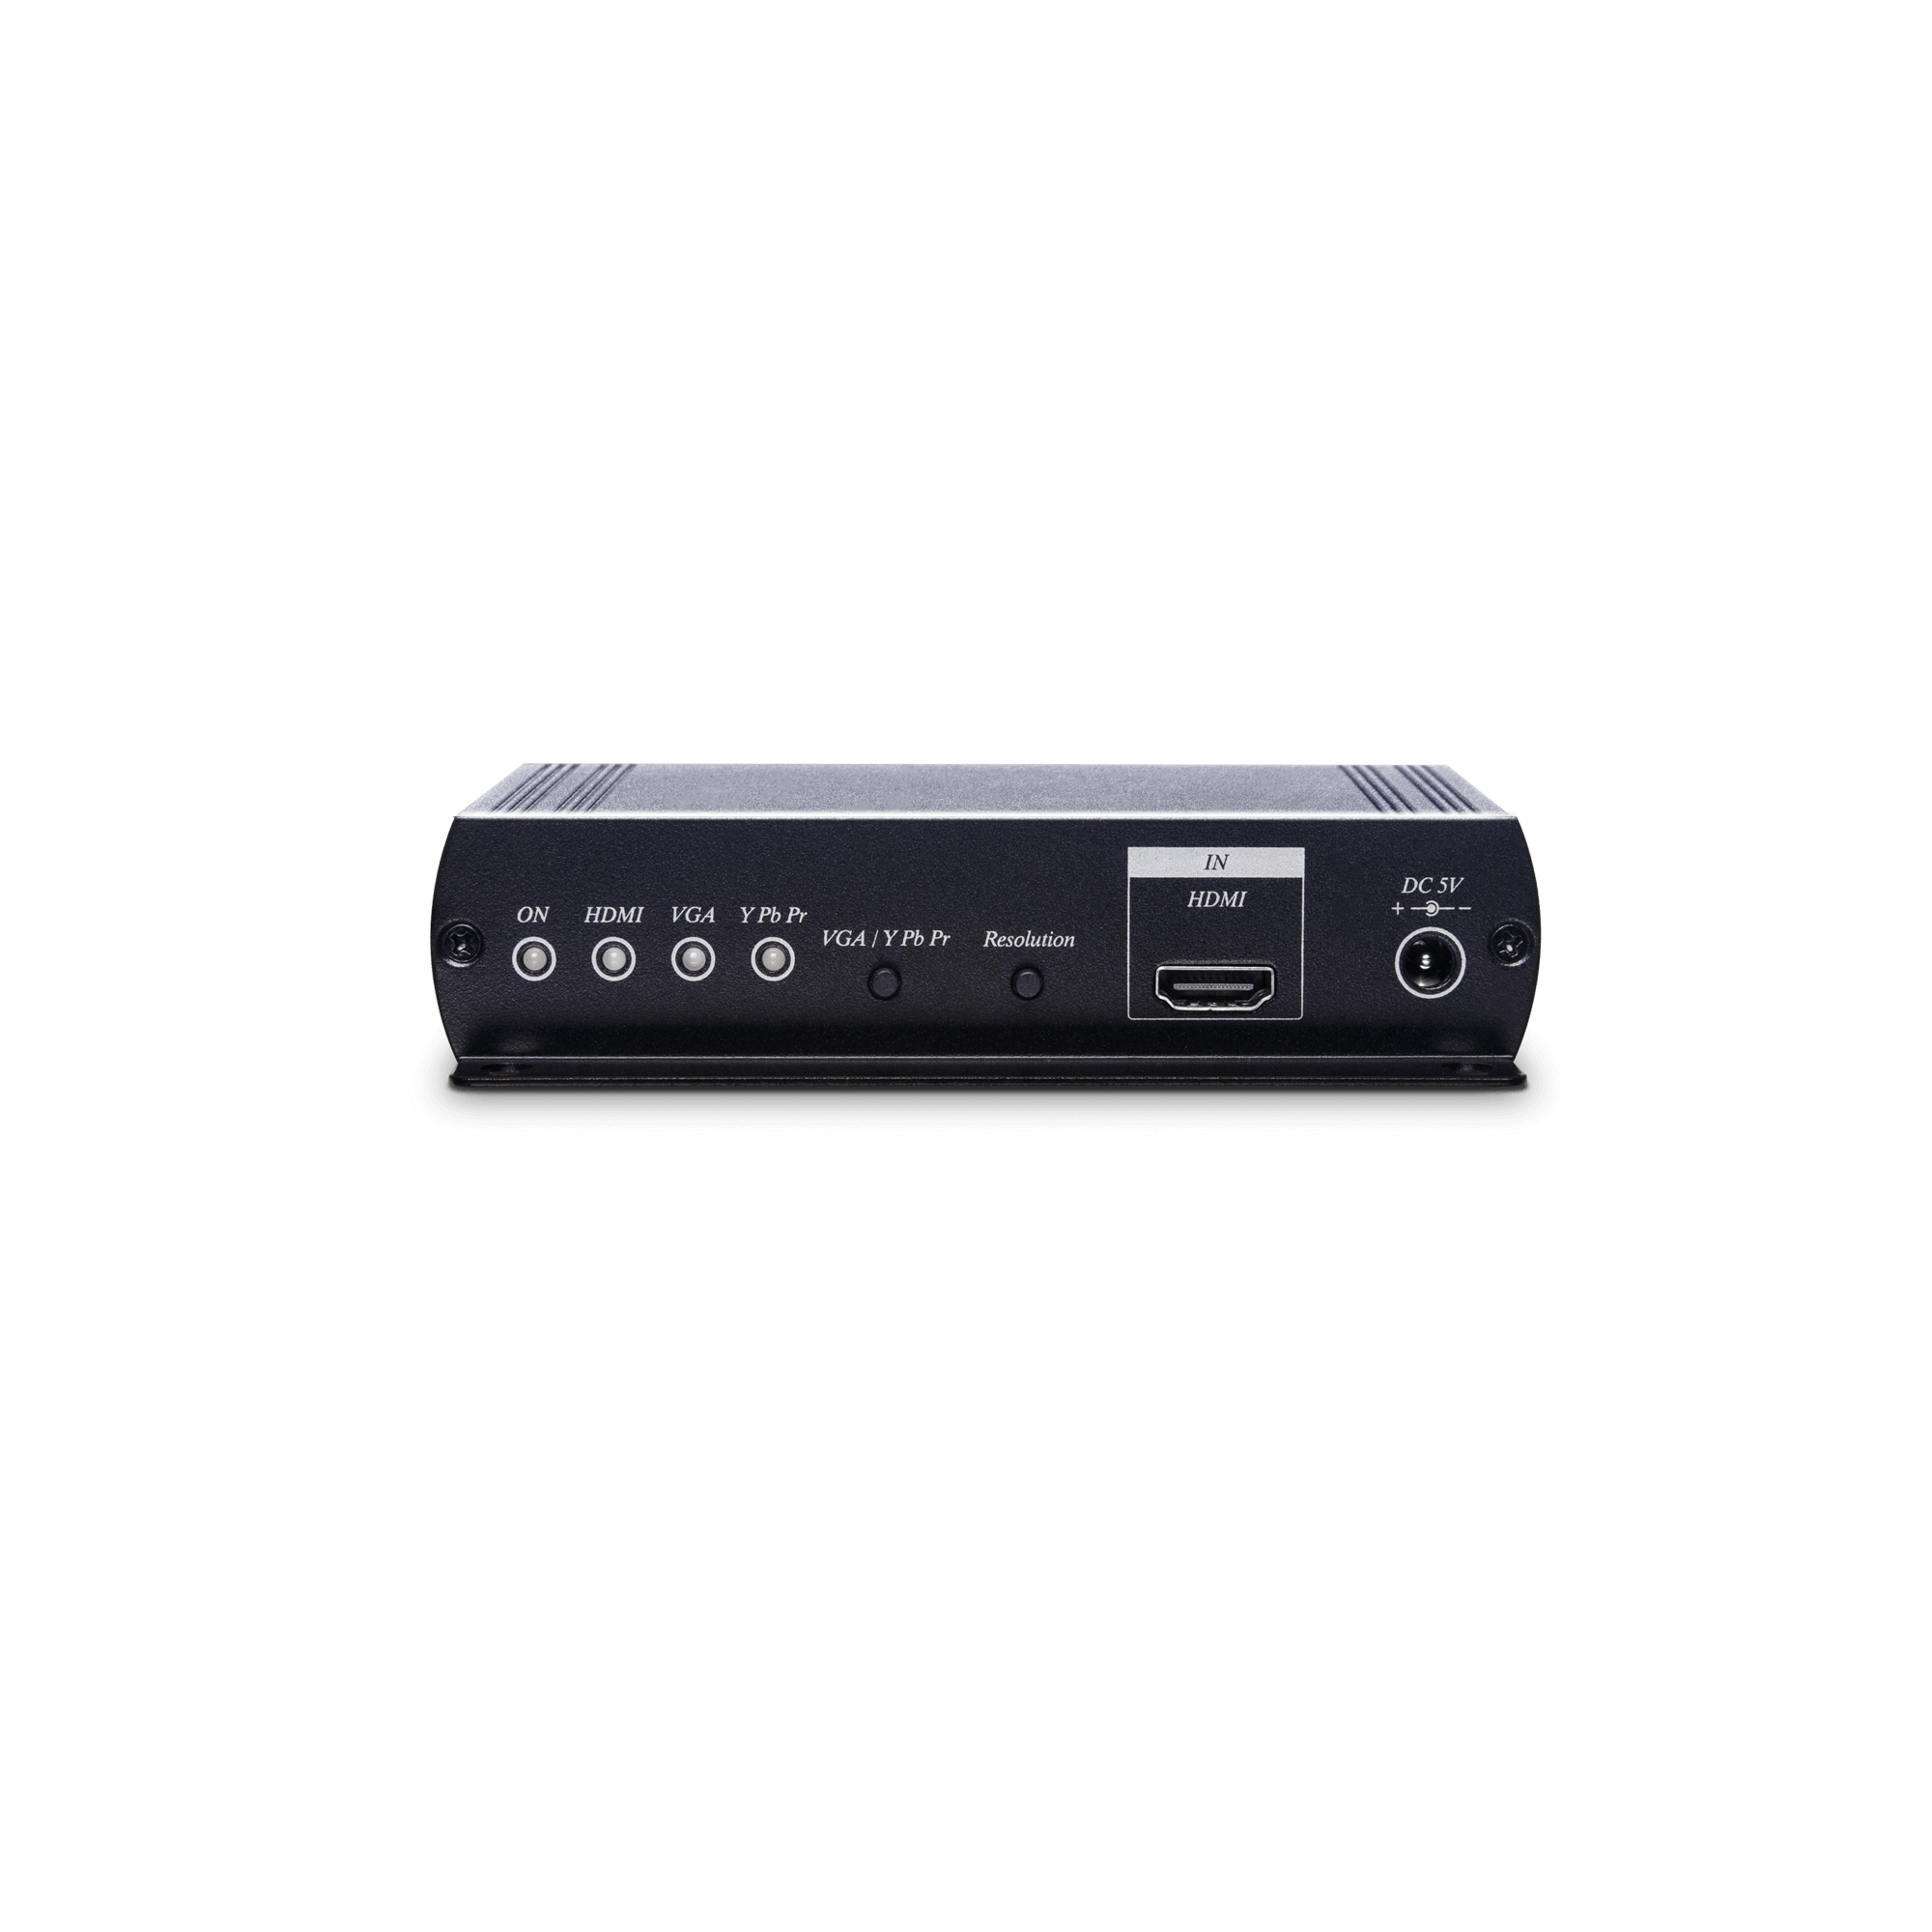 HDMI to VGA/Component Video with Stereo Audio Converter